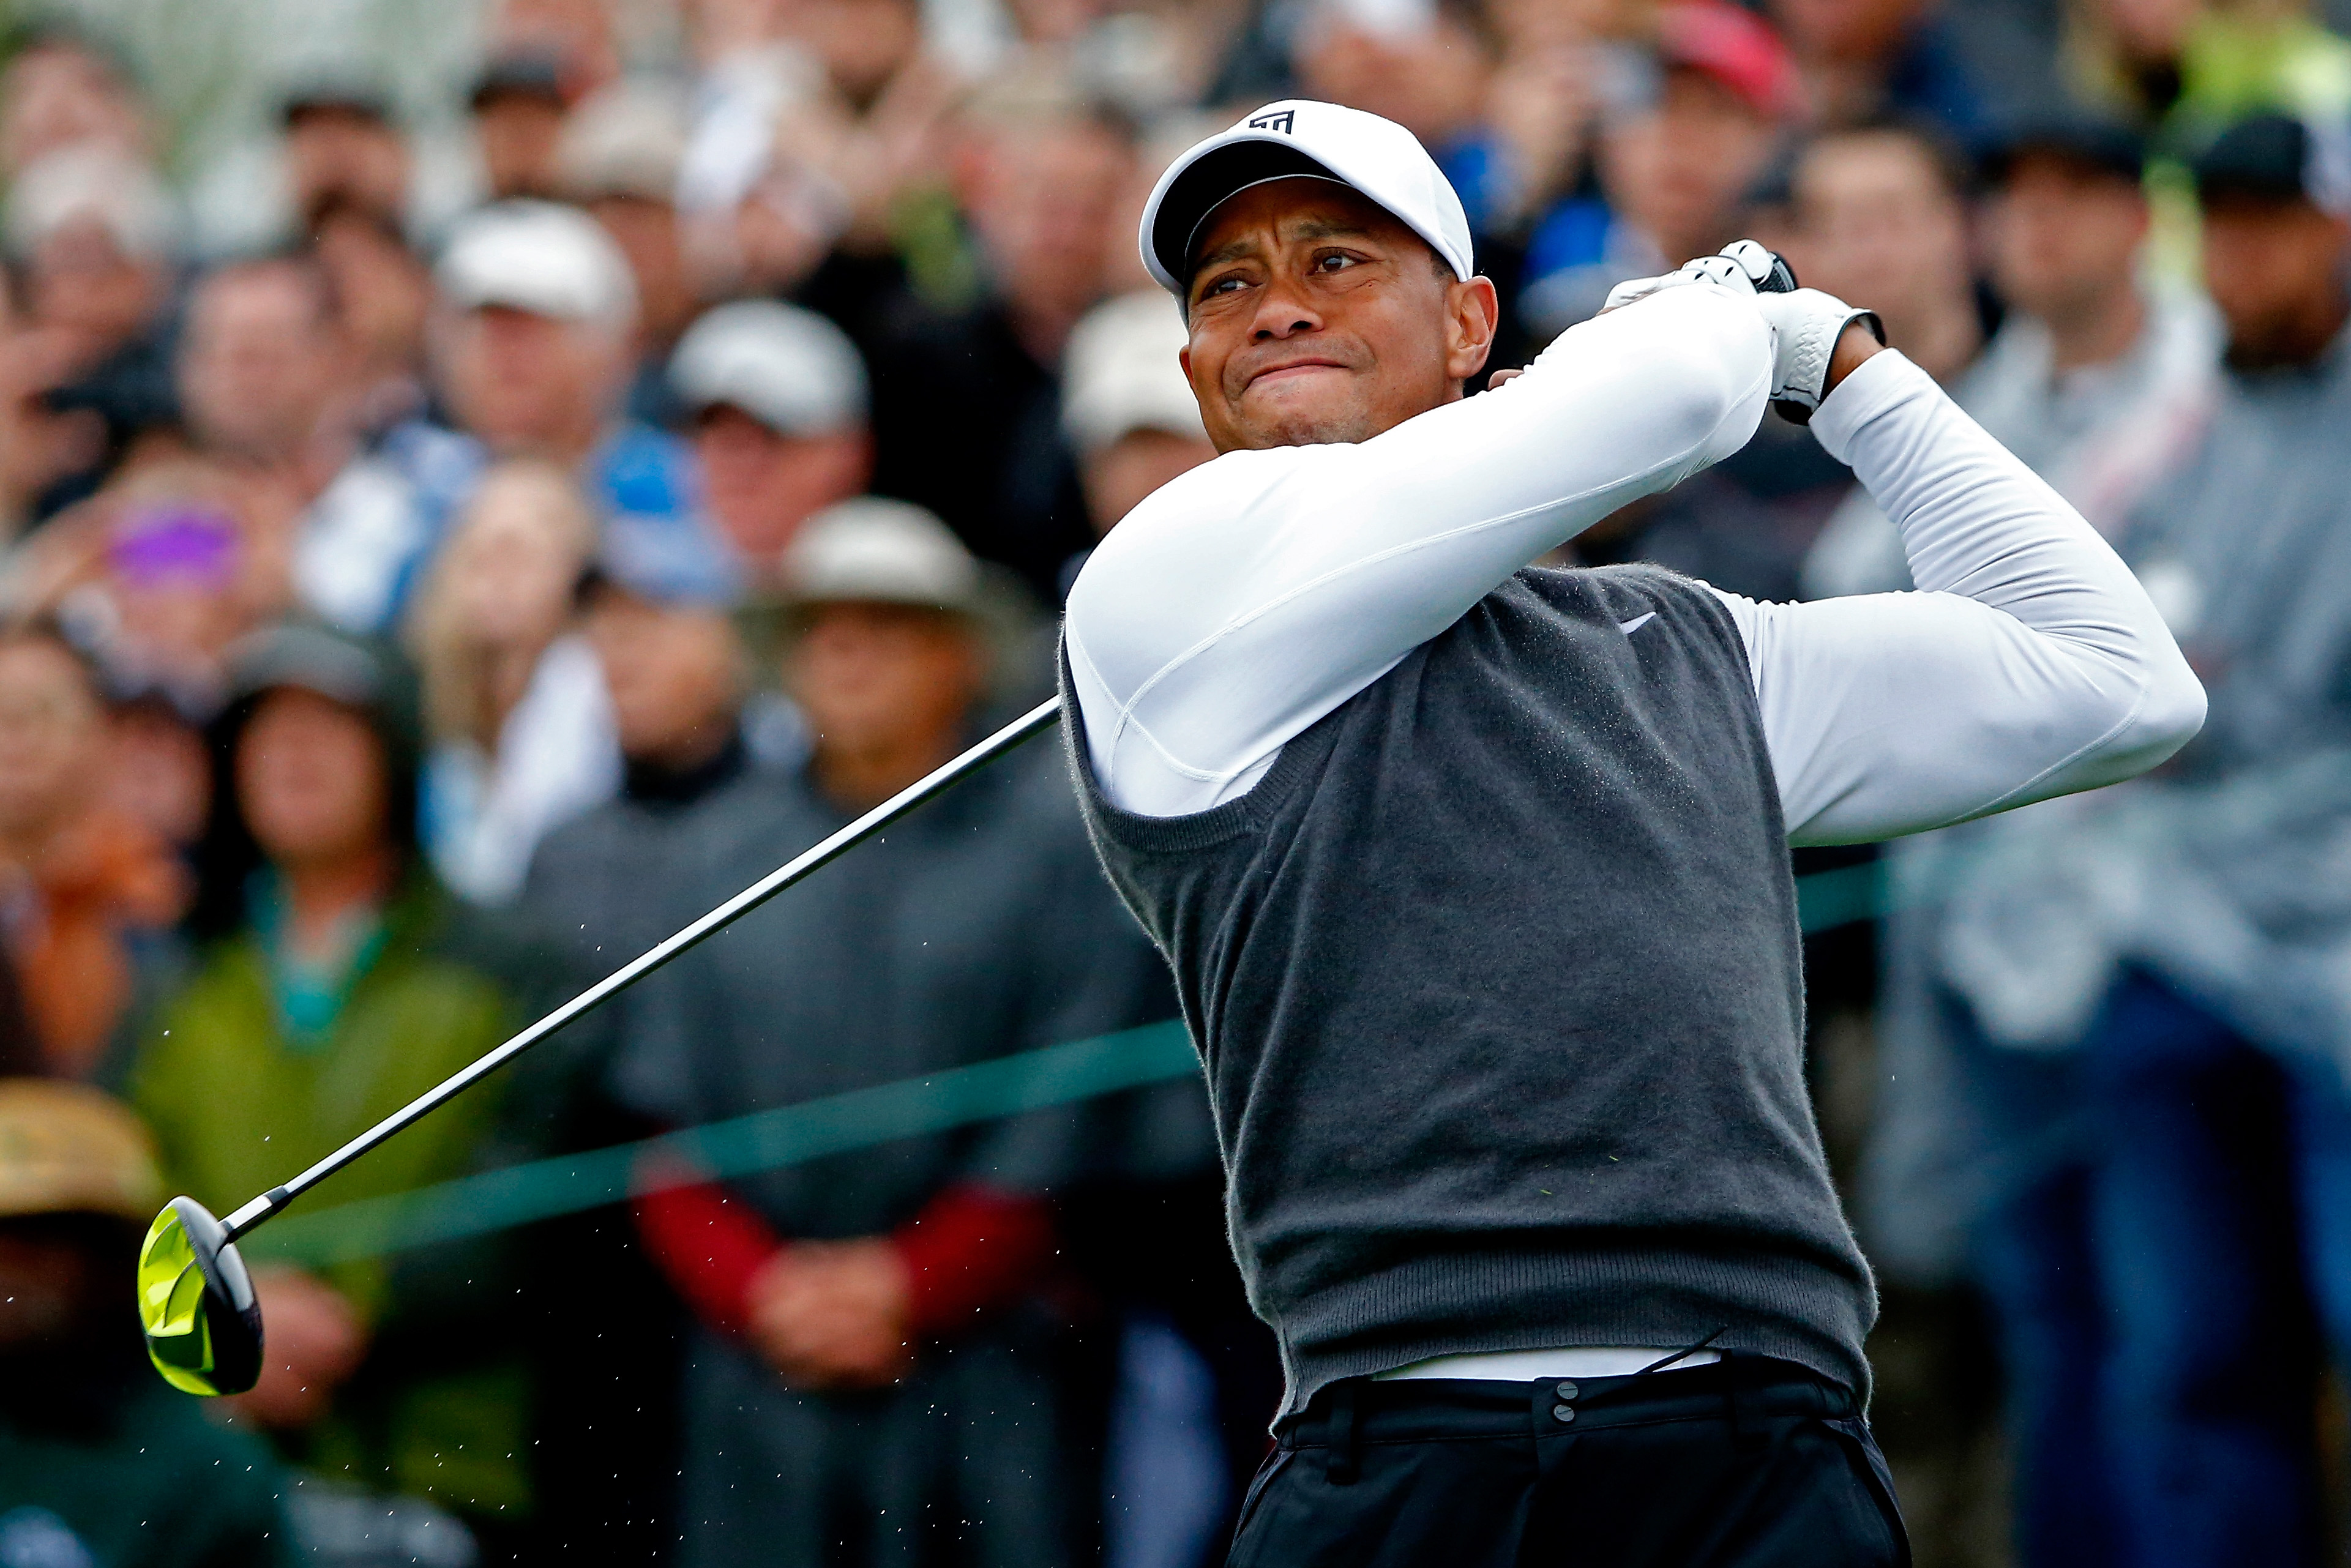 Tiger Woods plays the Waste Management Phoenix Open (Photo: Getty Images)